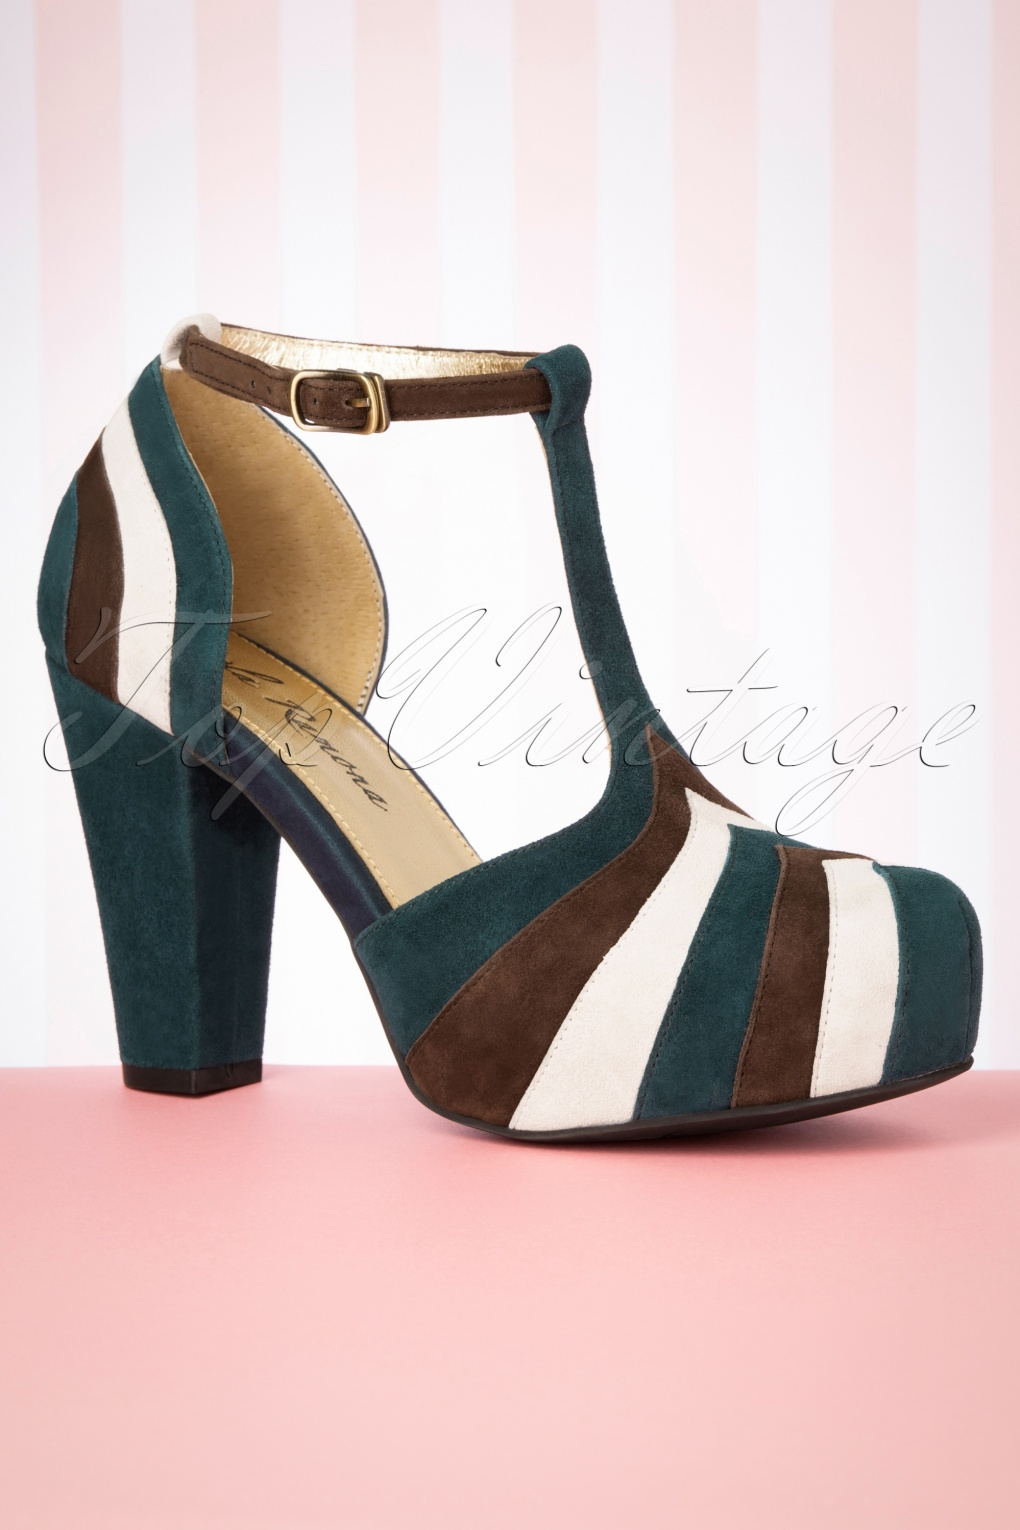 70s Shoes, Platforms, Boots, Heels | 1970s Shoes 70s Angie T-Strap Soul Pumps in Teal £142.18 AT vintagedancer.com